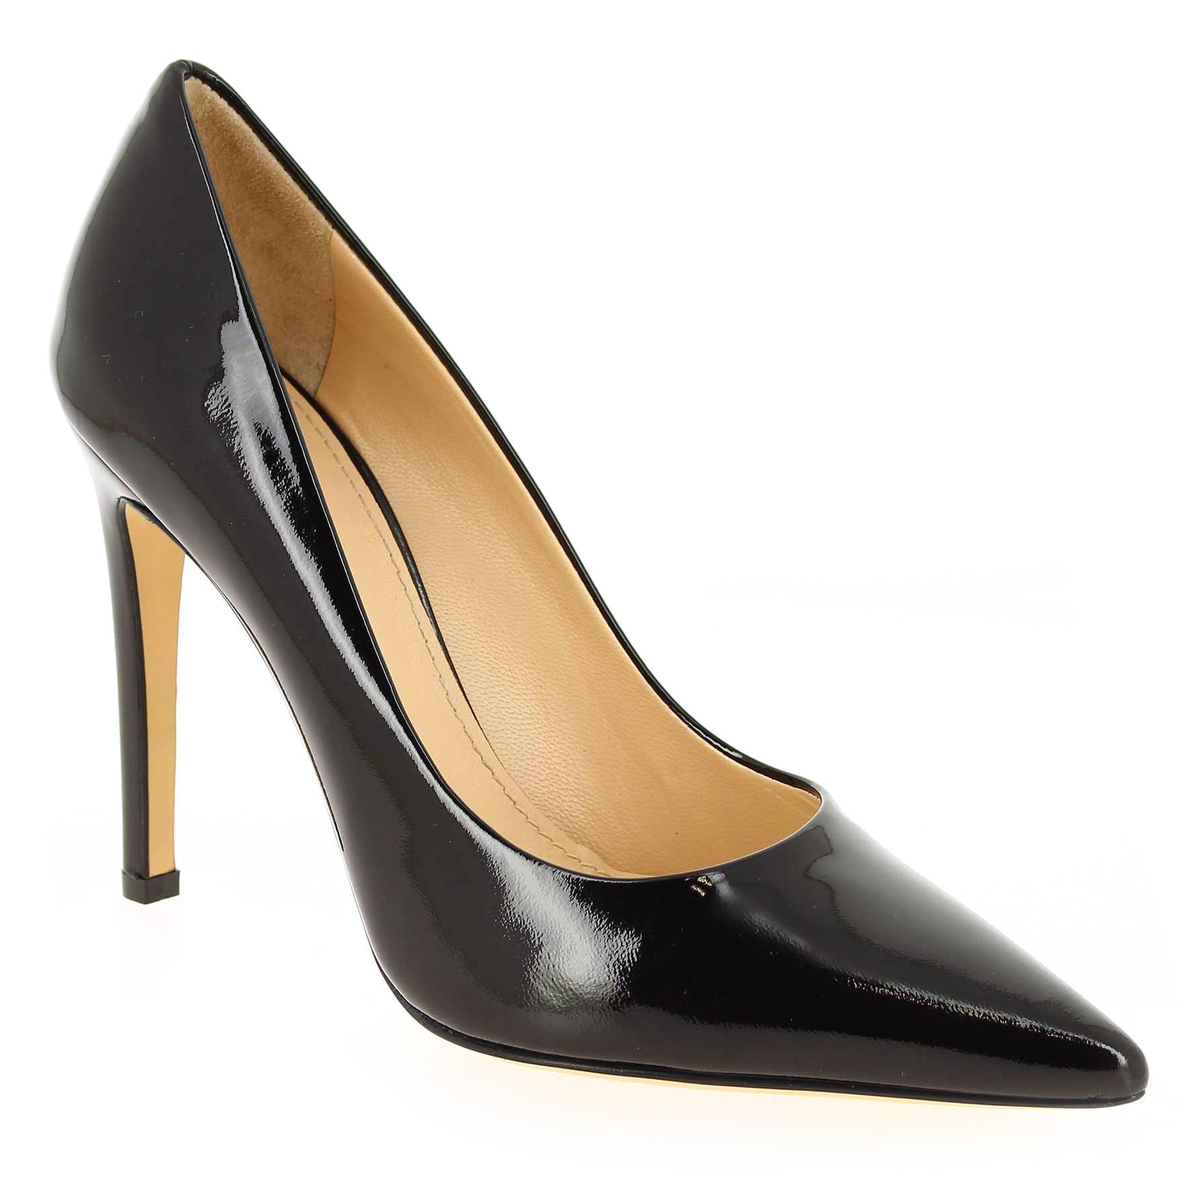 b40e864868a9ab Chaussures Giancarlo 55311 pour Femme | JEF Chaussures